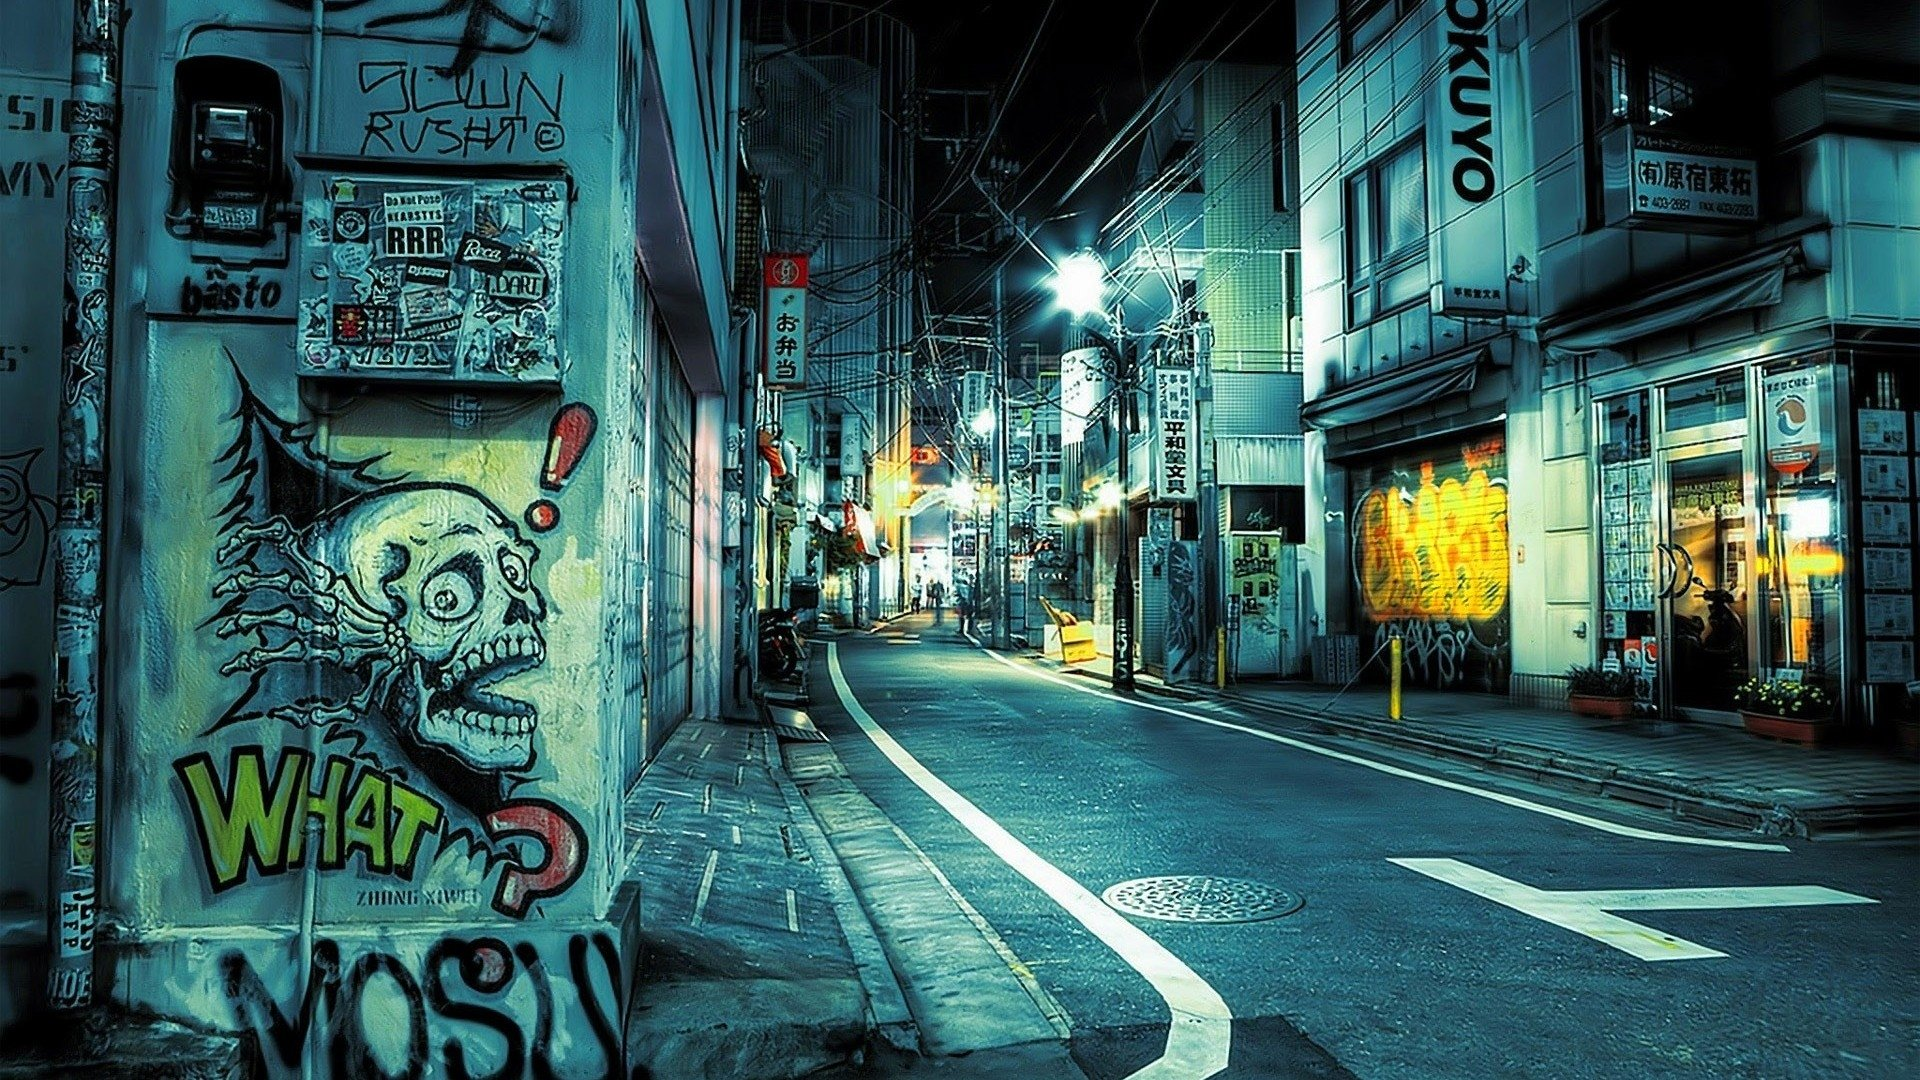 HD Wallpaper Street